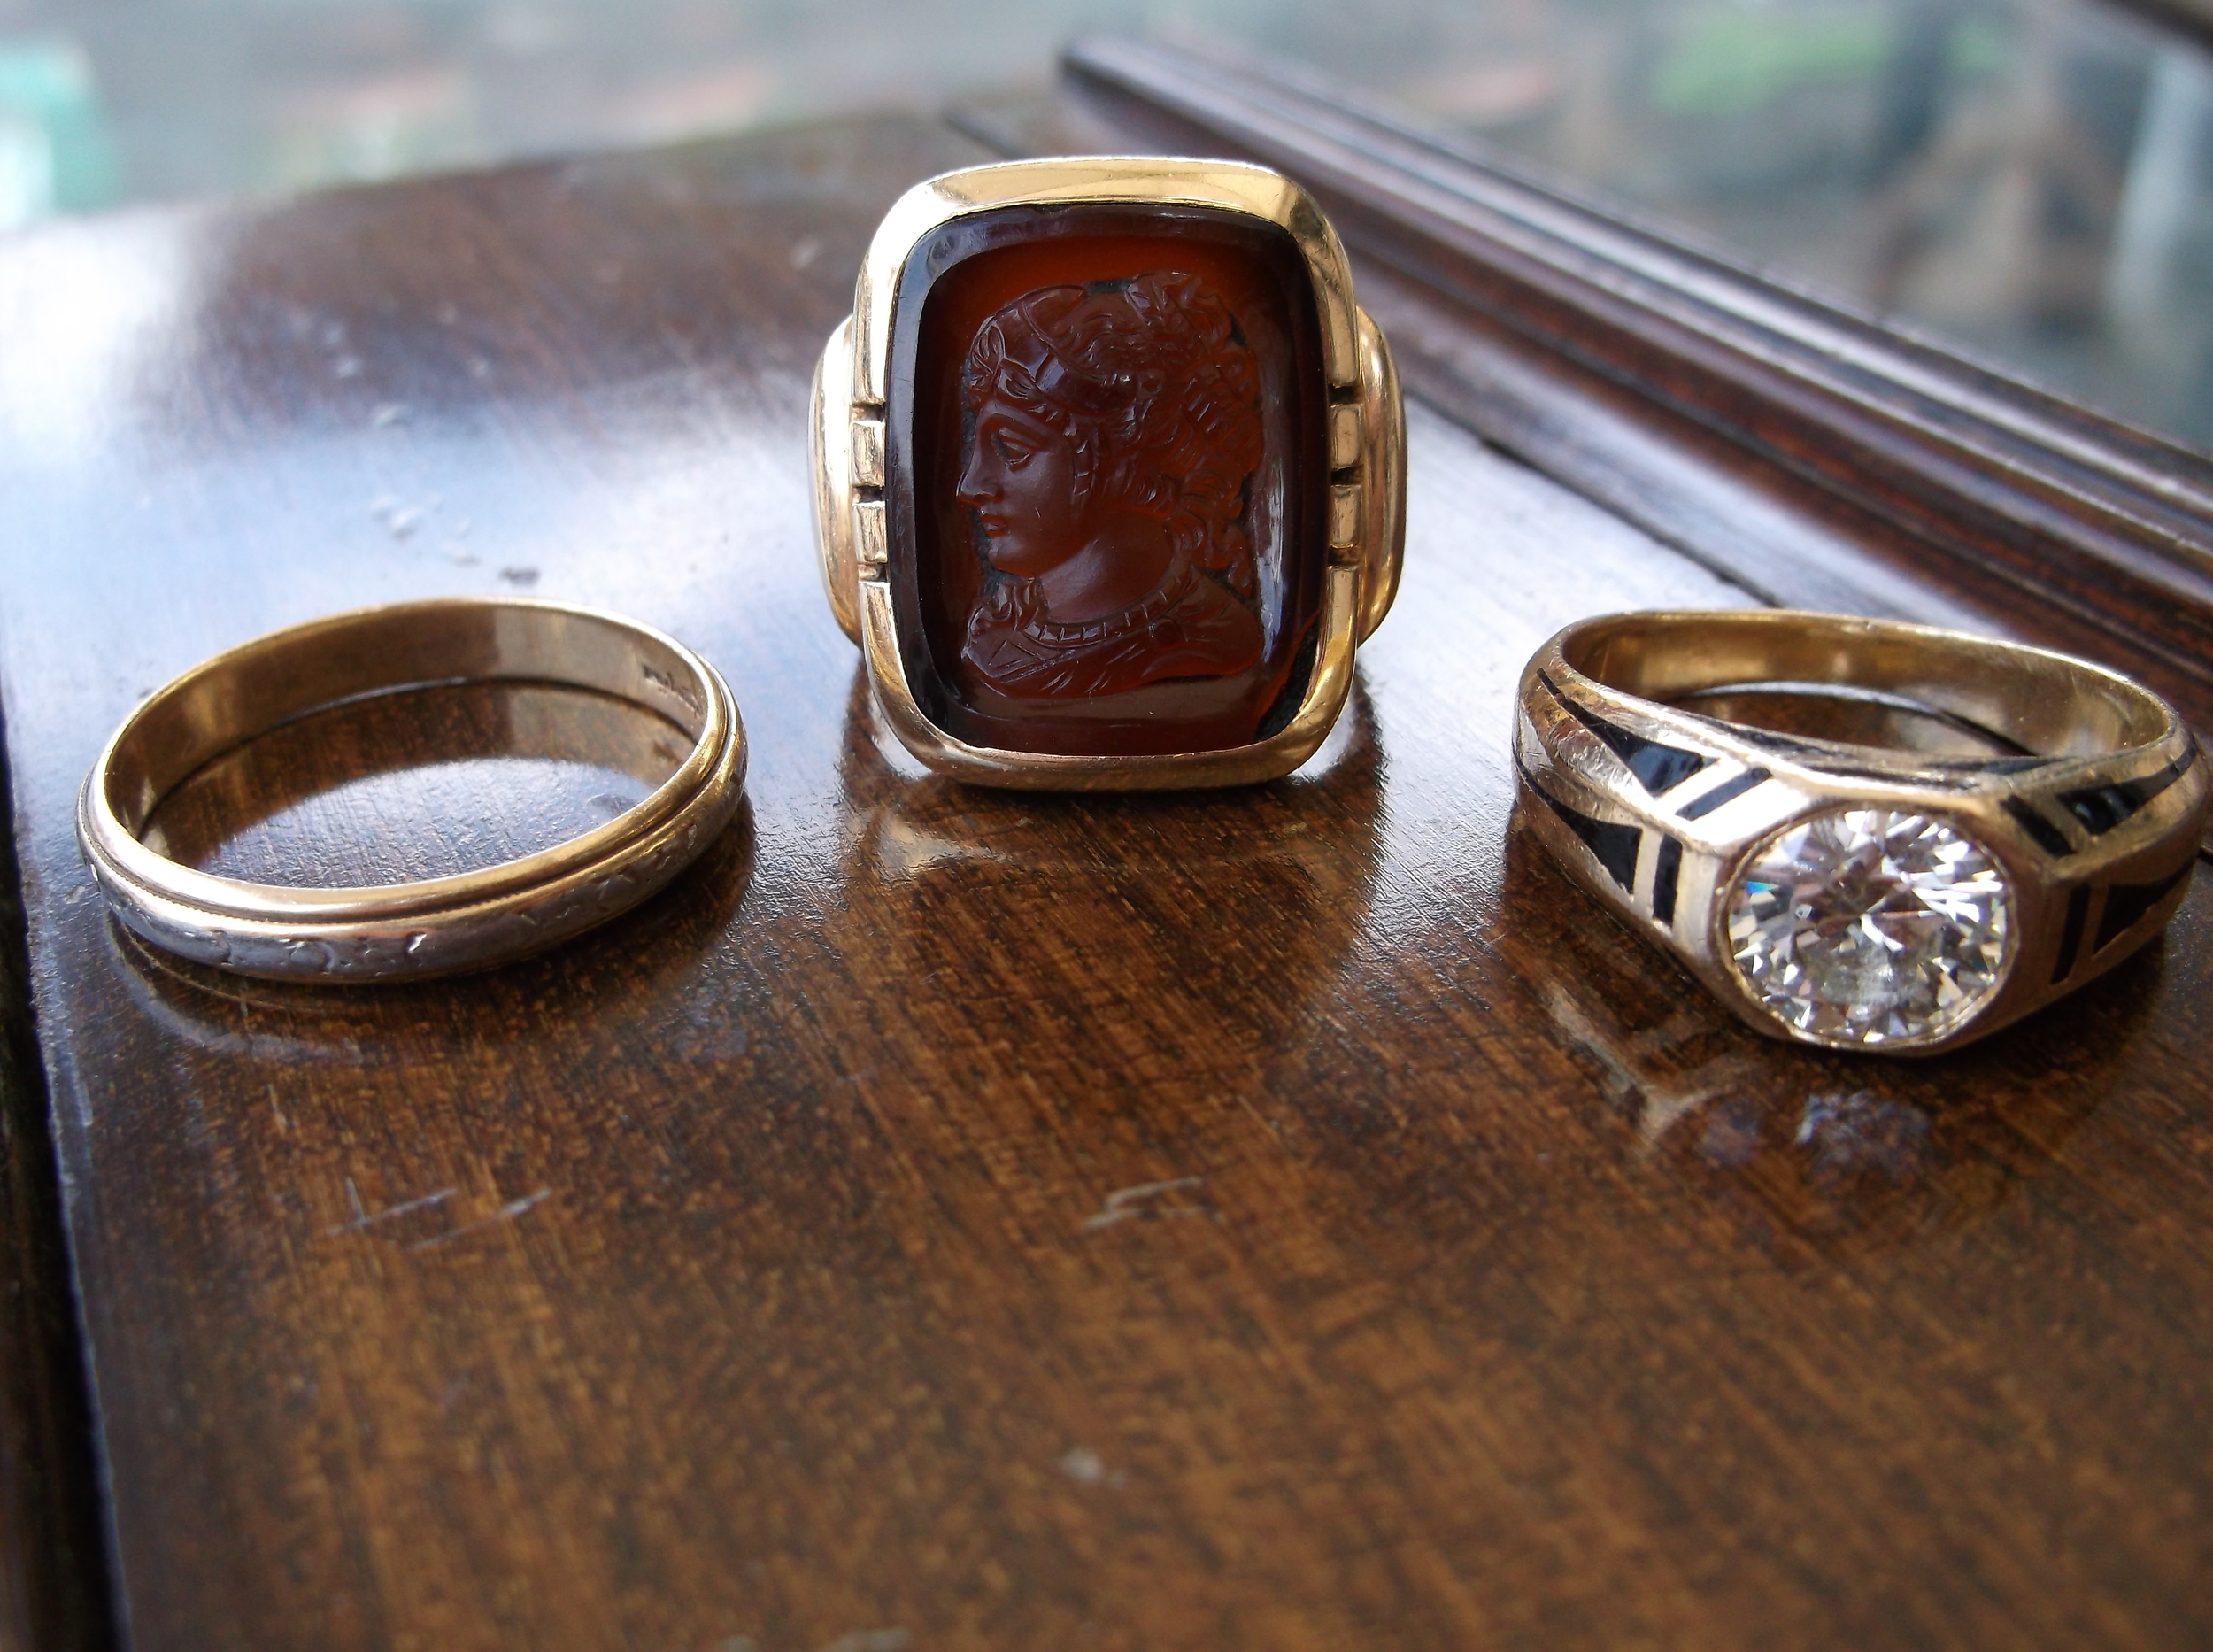 From left to right:  1920's 14K yellow and white gold men's band, Carnelian intaglio 14K yellow gold men's ring, SOLD - all original Art Deco 1.48 carat diamond and black enamel men's ring.